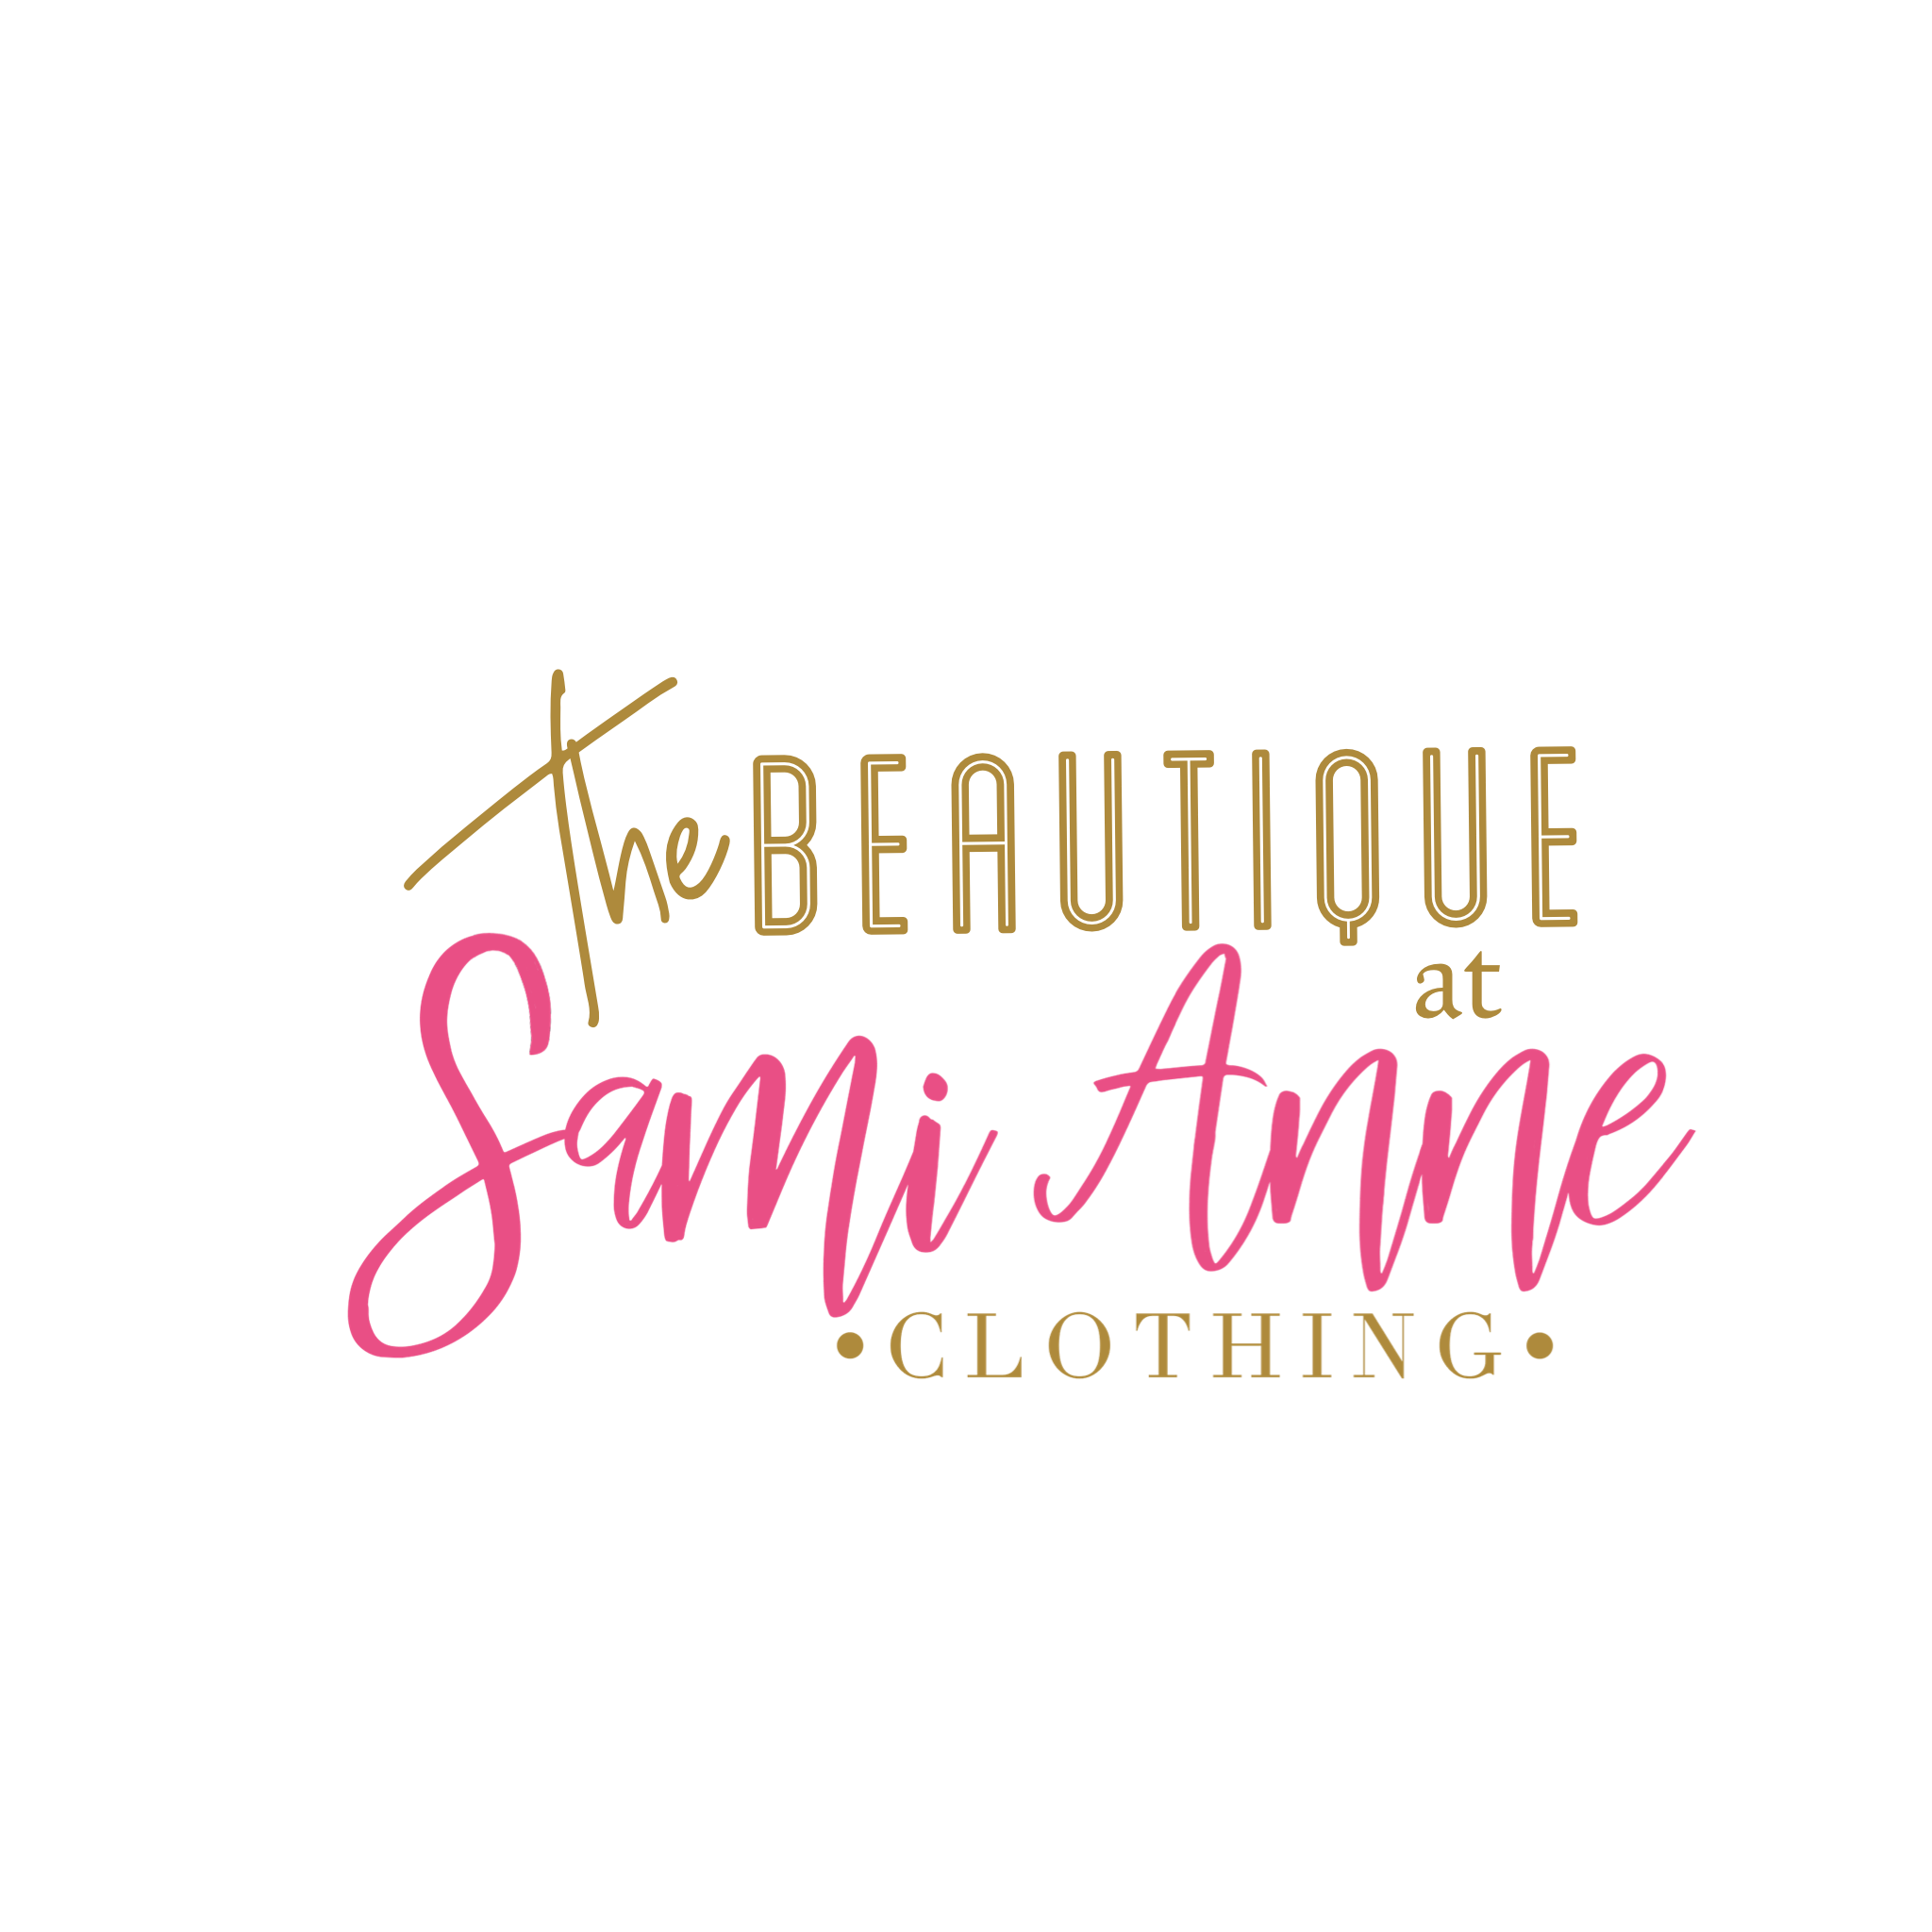 the beautique sami anne clothing logo .png